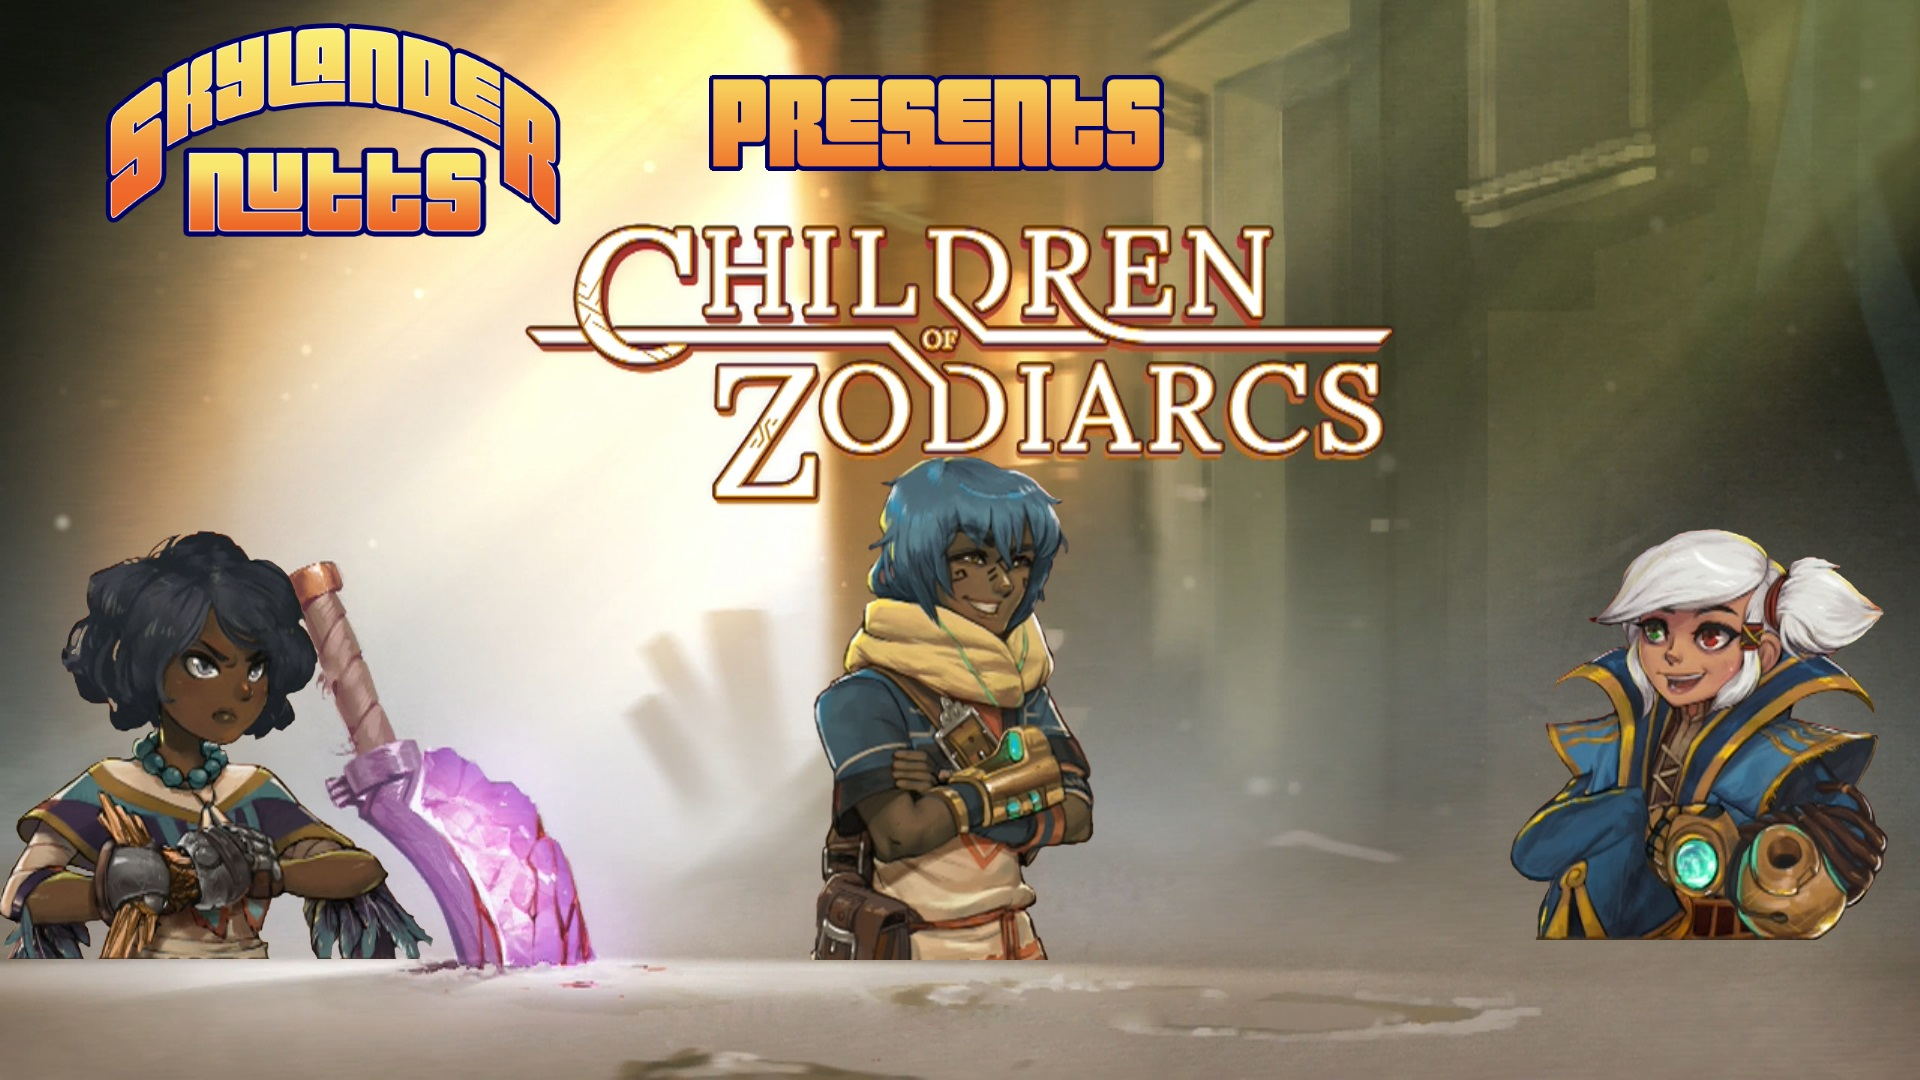 SkylanderNutts Presents Children of Zodiarcs   SkylanderNutts 1920x1080